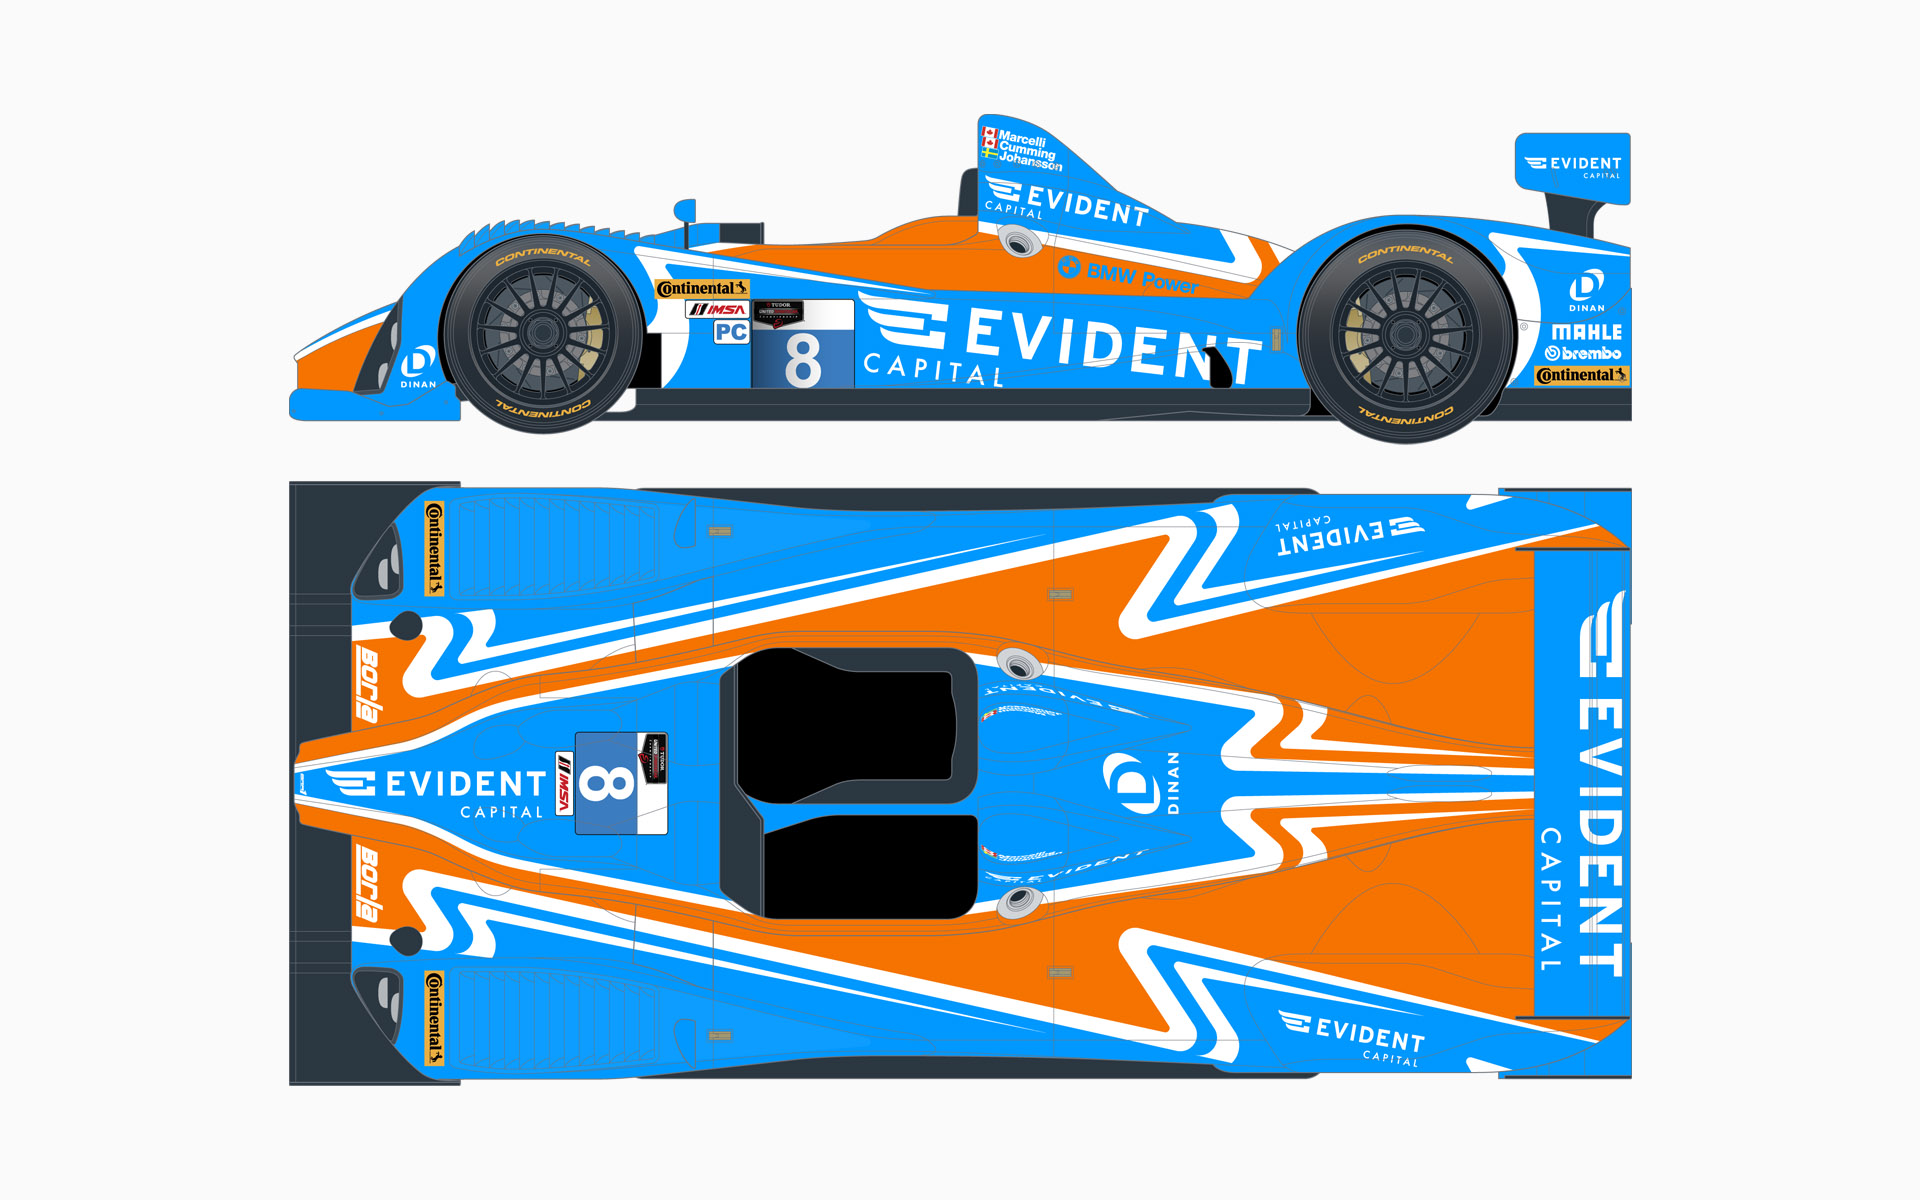 2014 Evident Capital Oreca LMPC Livery Elevations